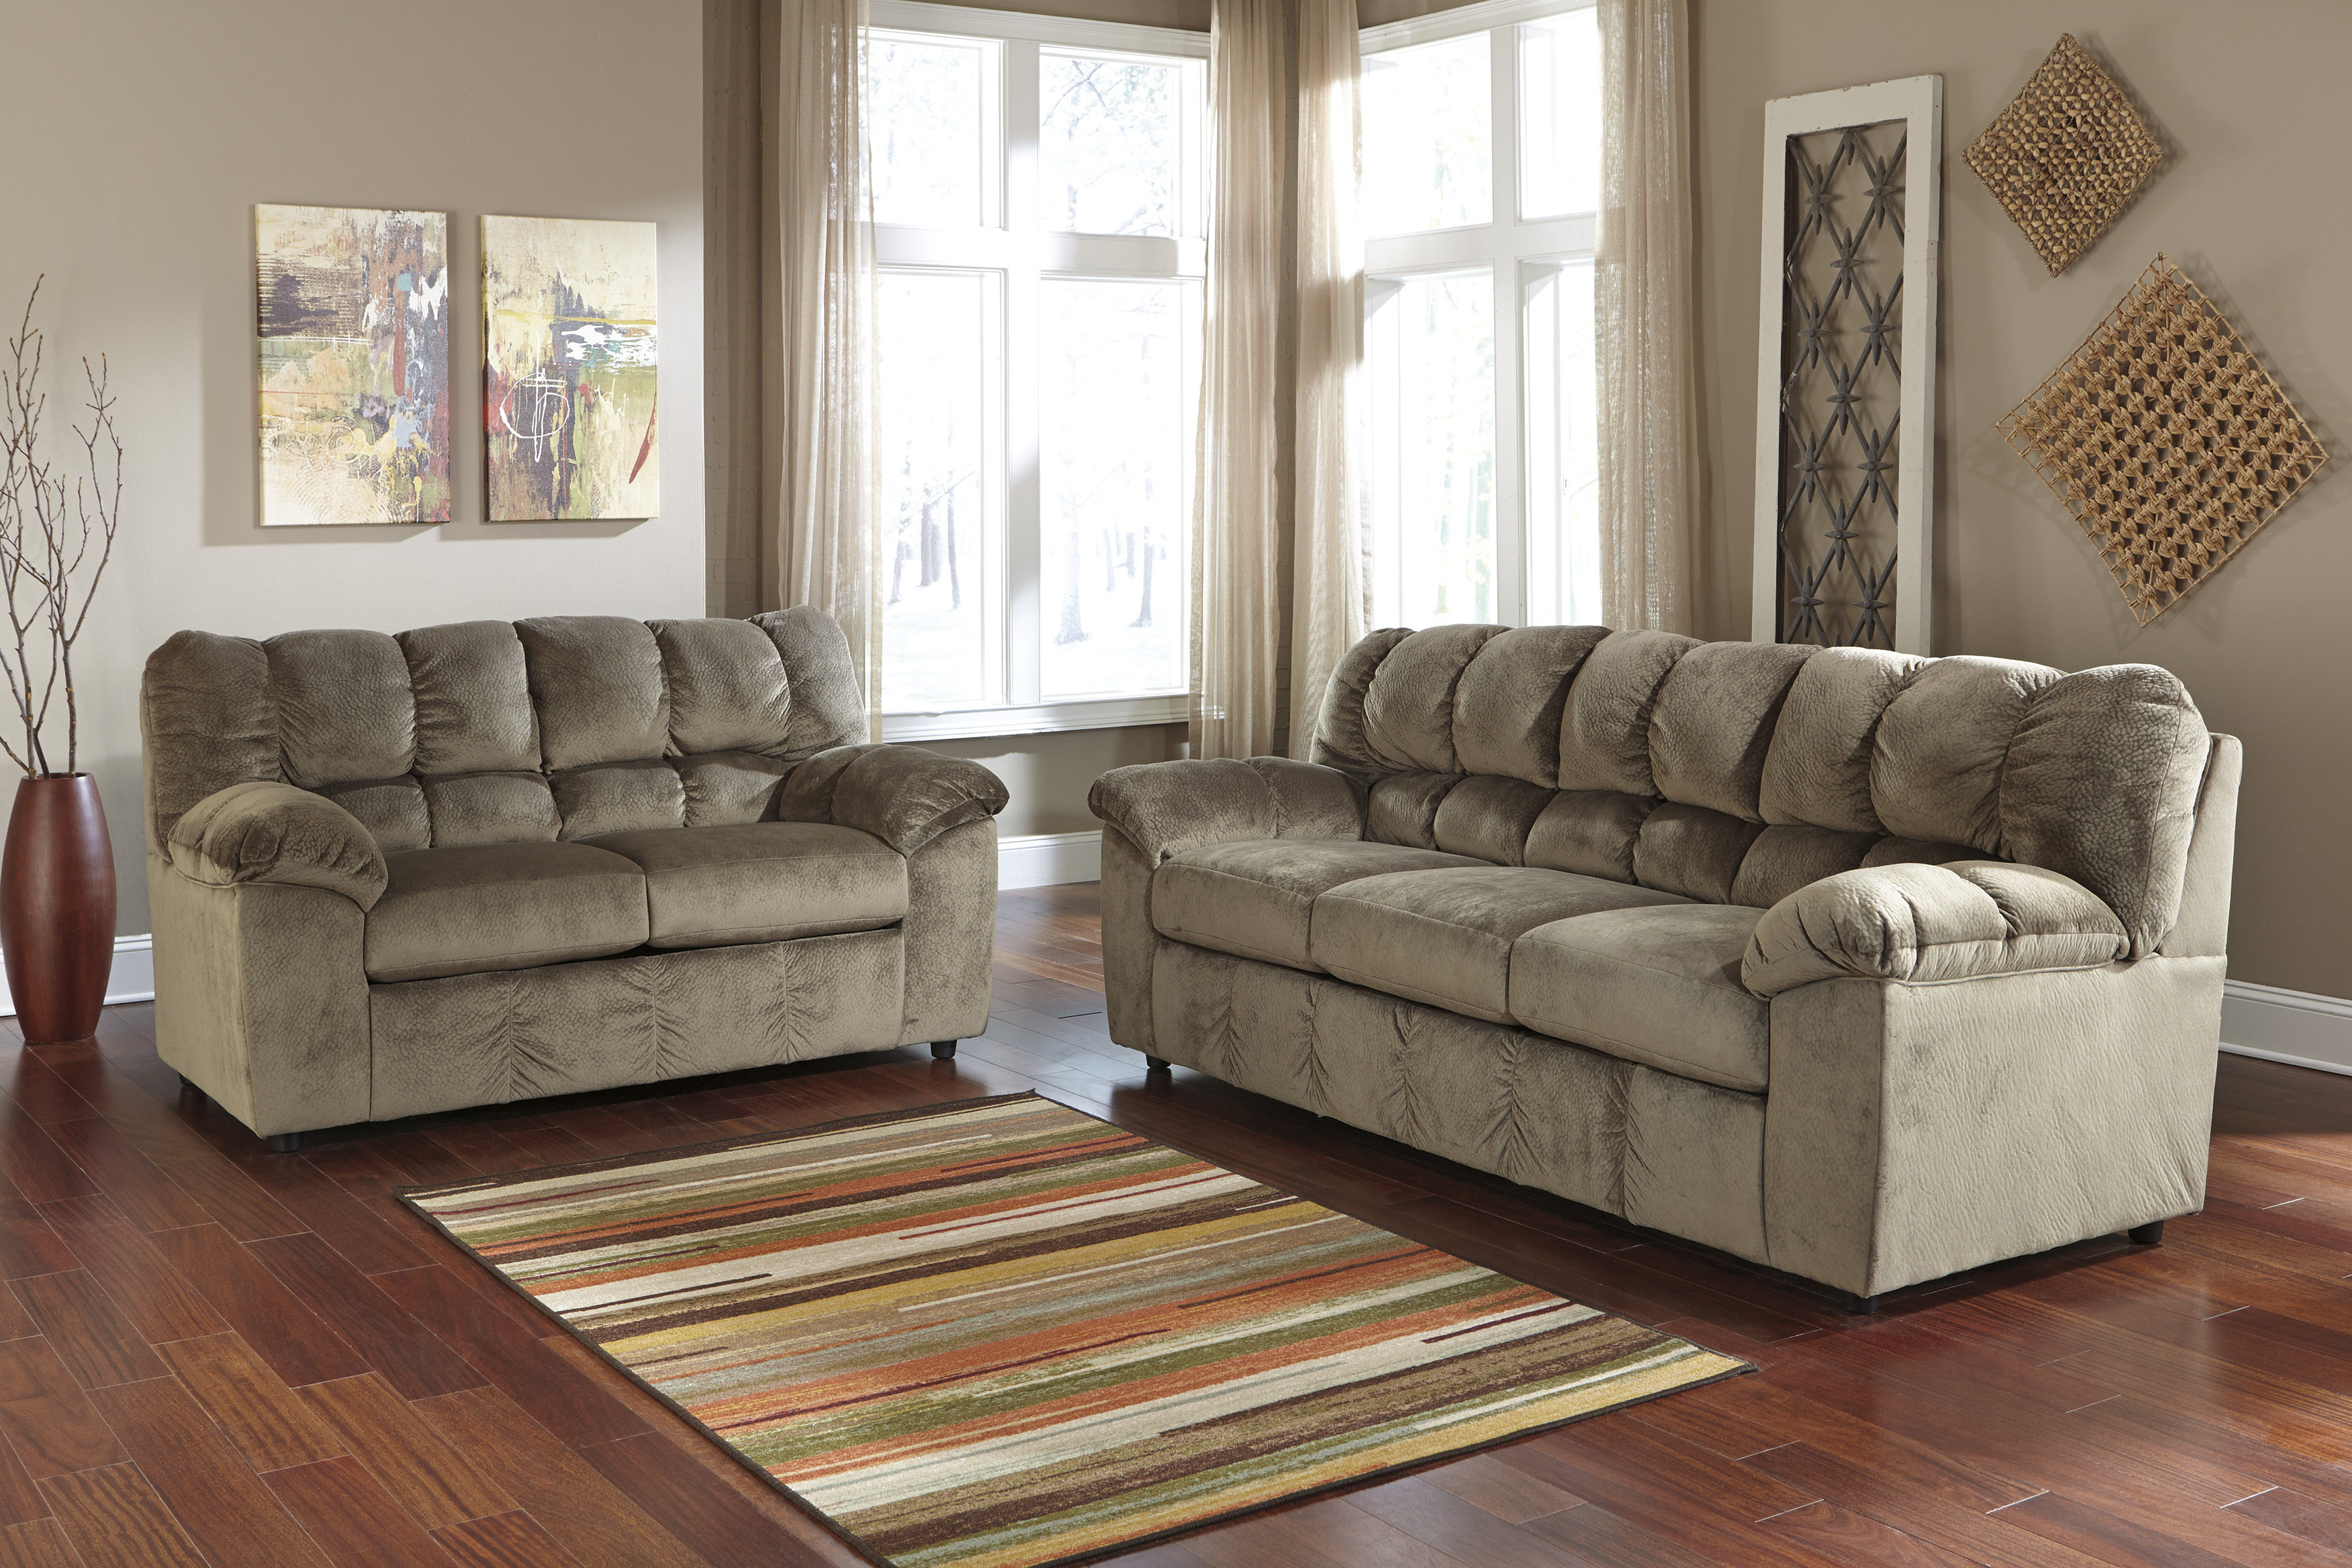 top az collections living decor stores in phoenix tucson room rhboyslashfriendcom furniture attachment rent to aarons design rhplayooncom own trendy